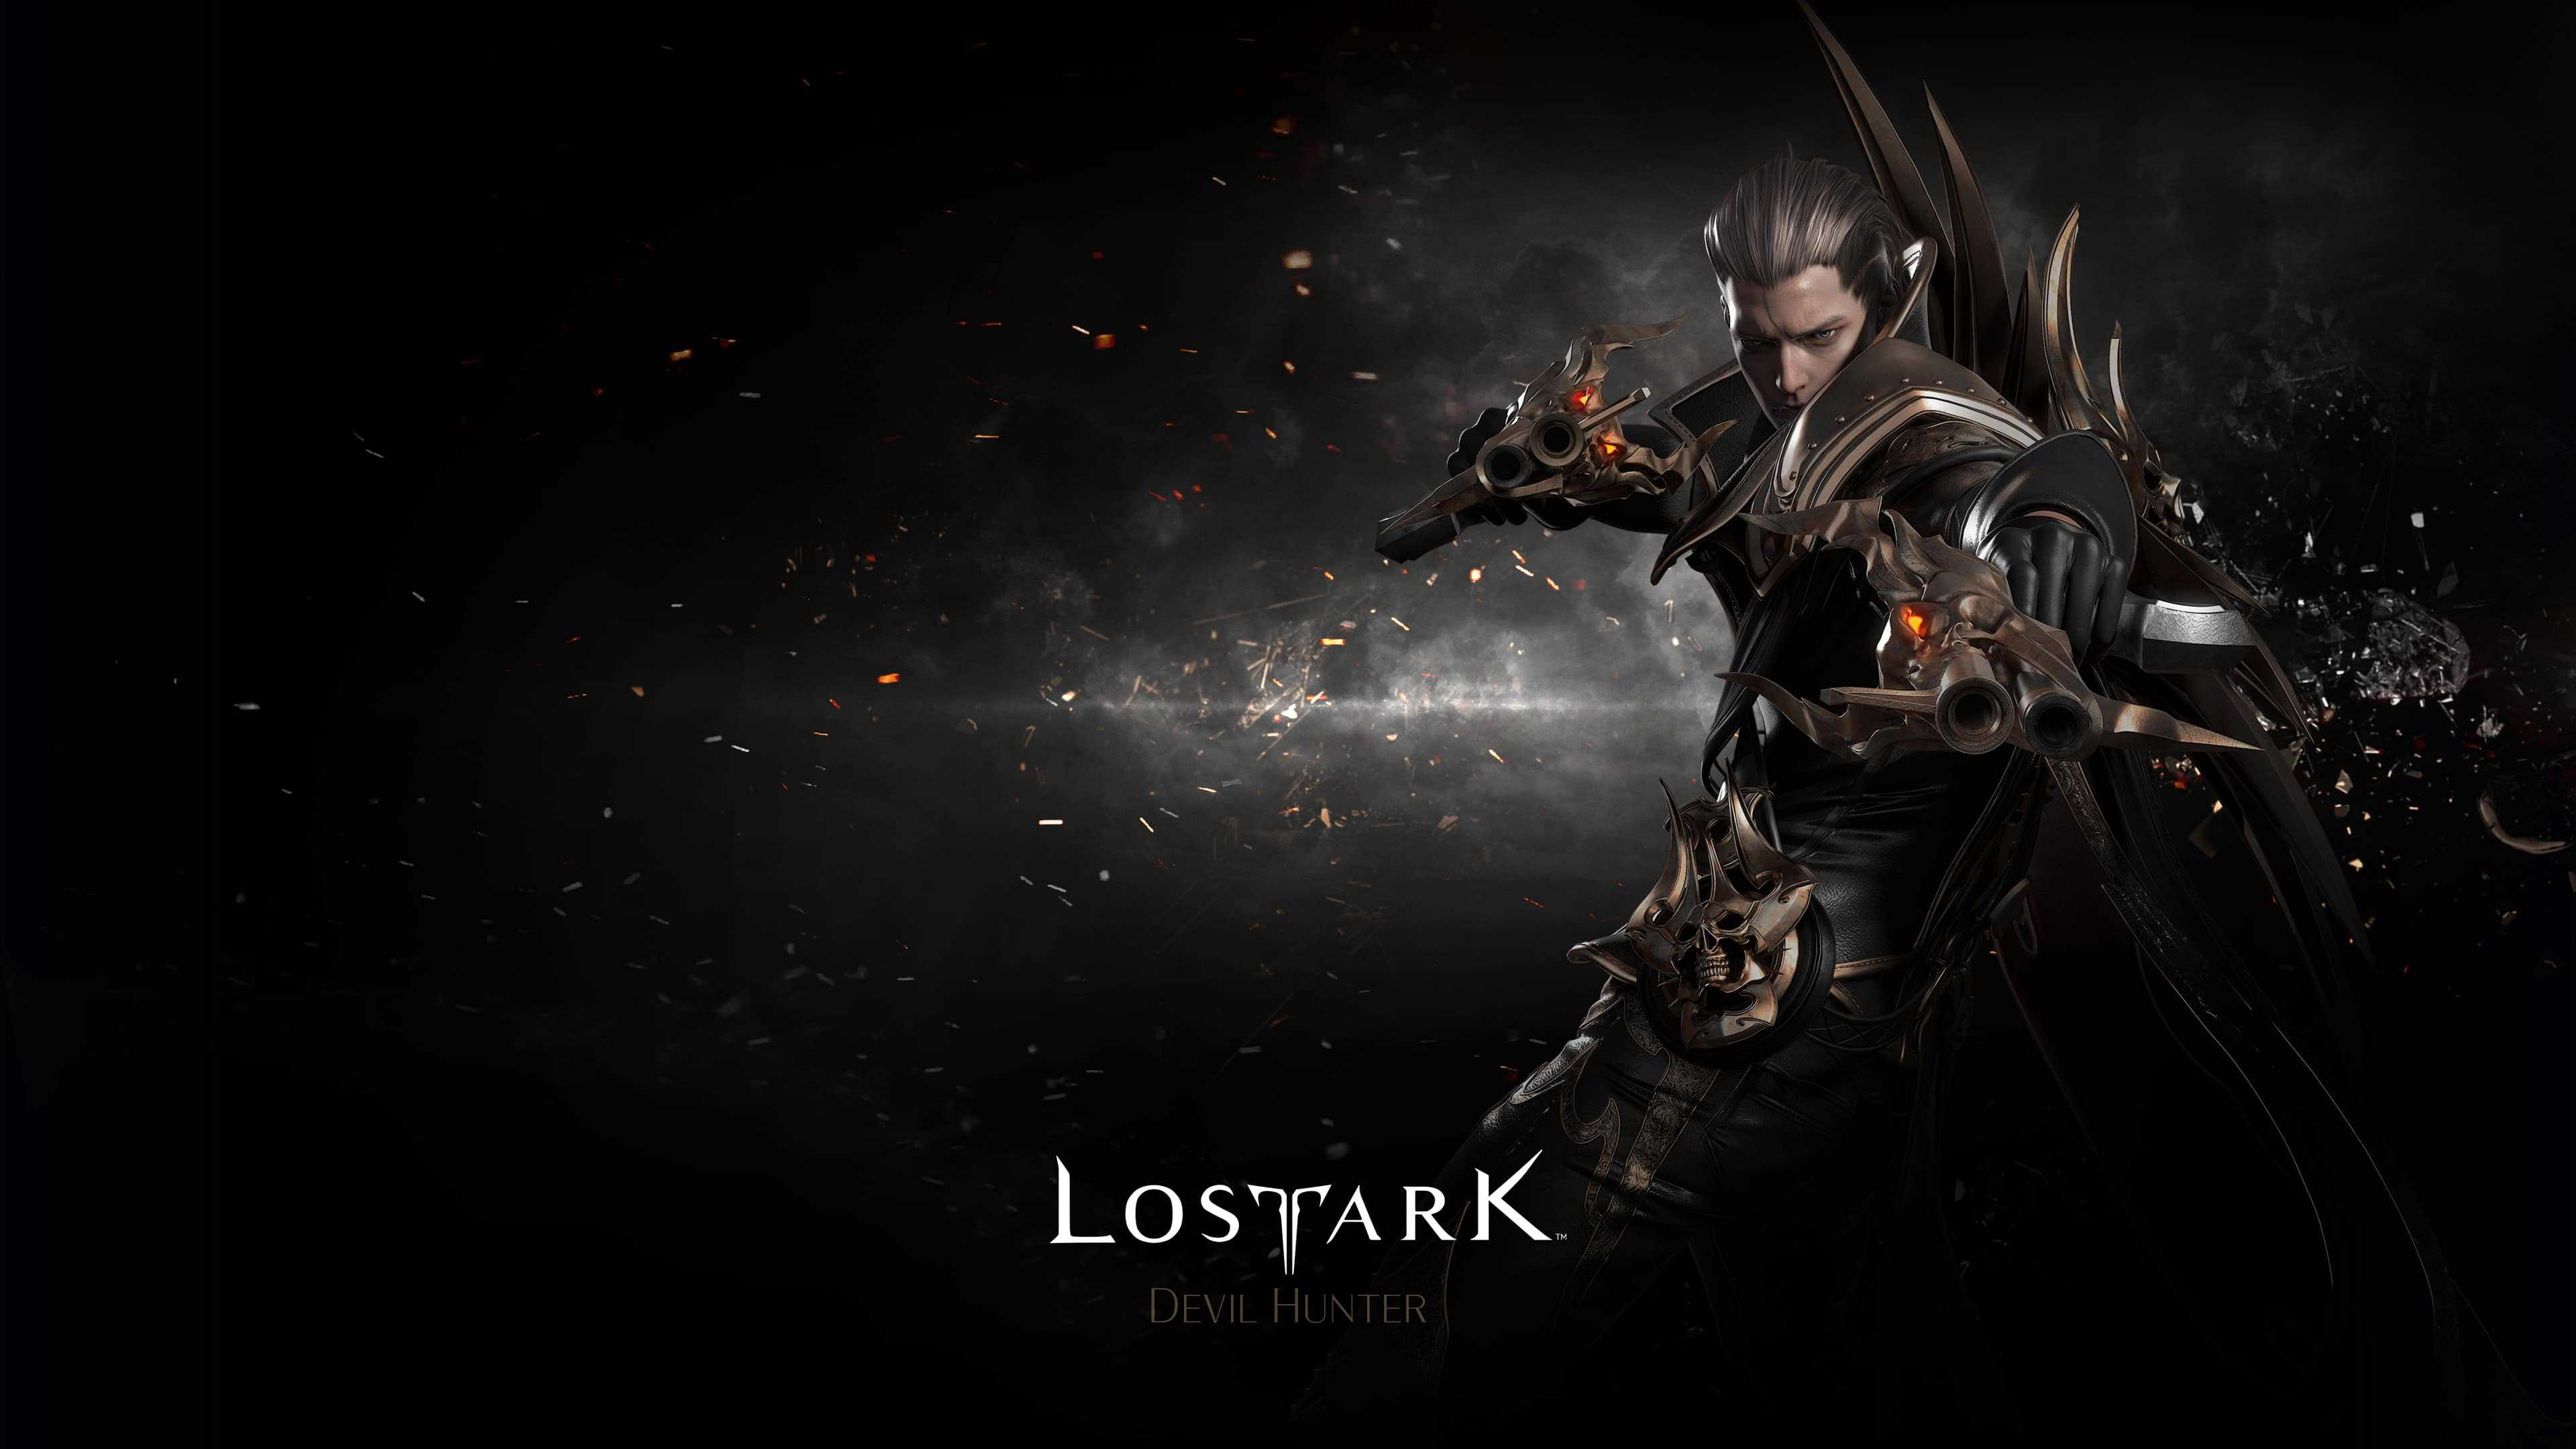 lost ark devil hunter uhd 4k wallpaper